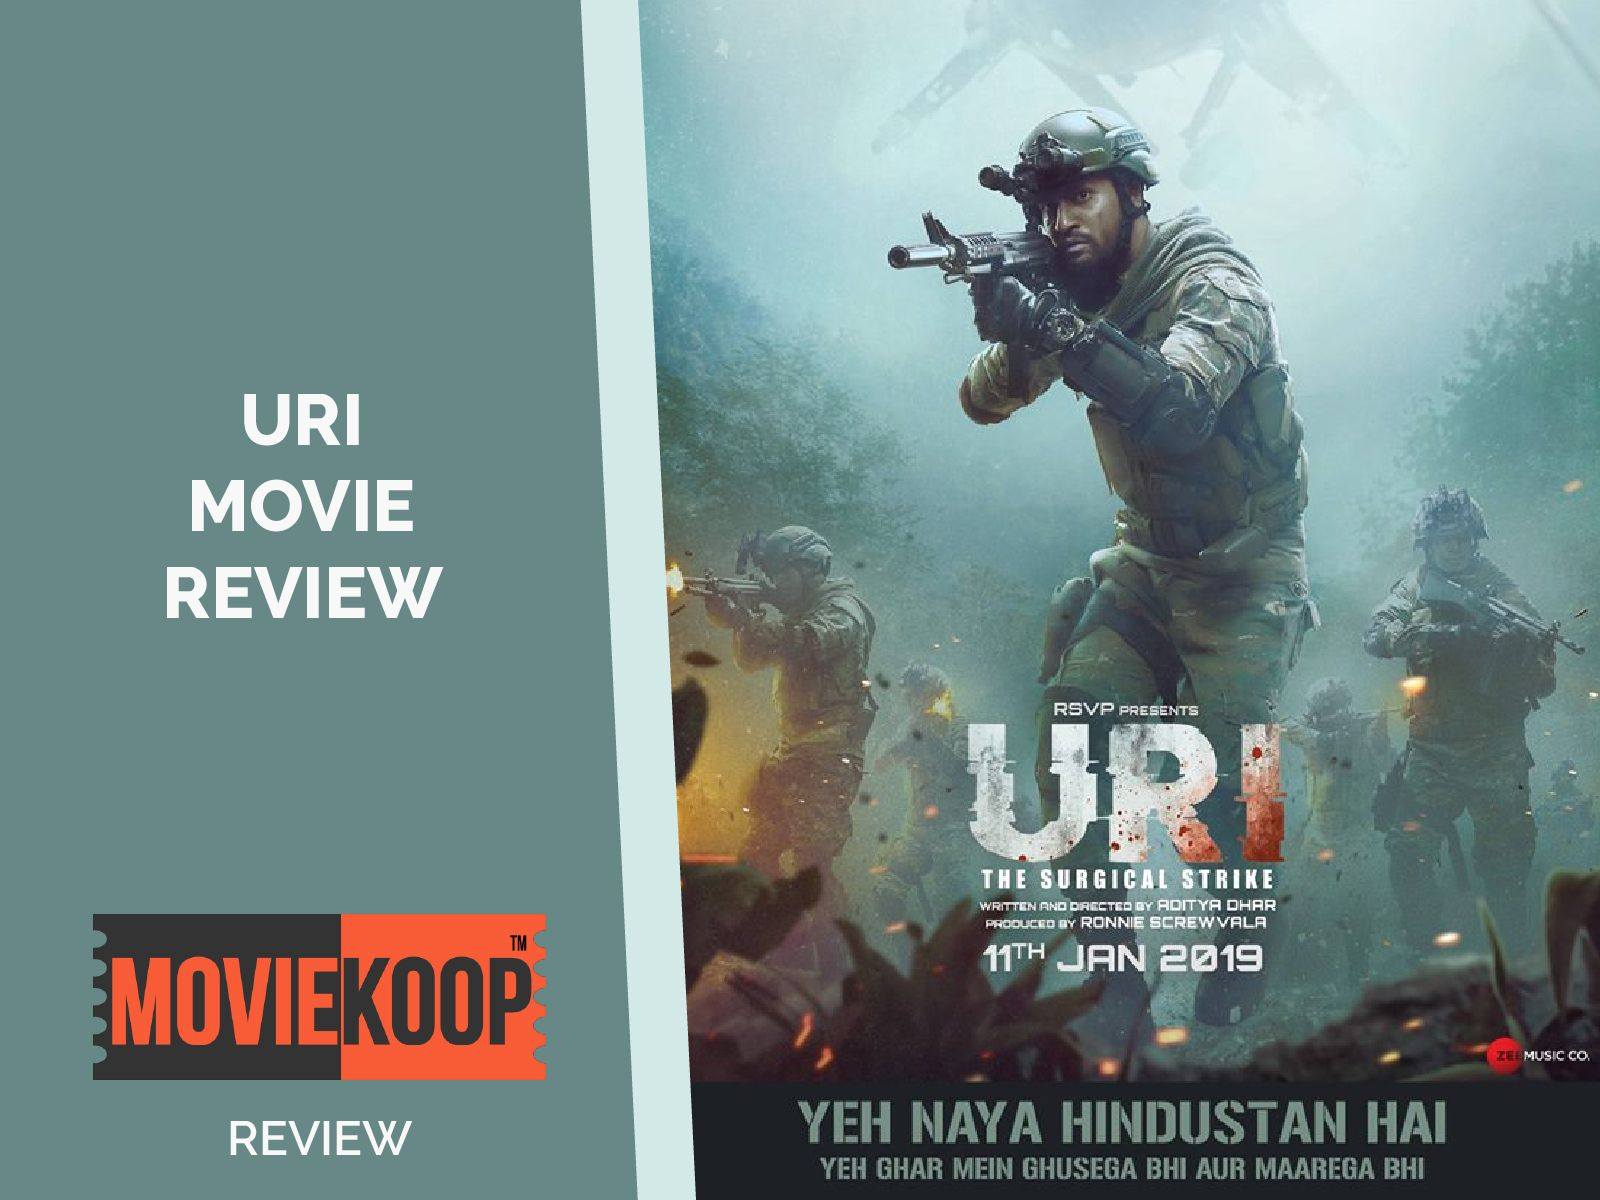 Uri stars Vicky Kaushal and Yami Gautam in the lead  The